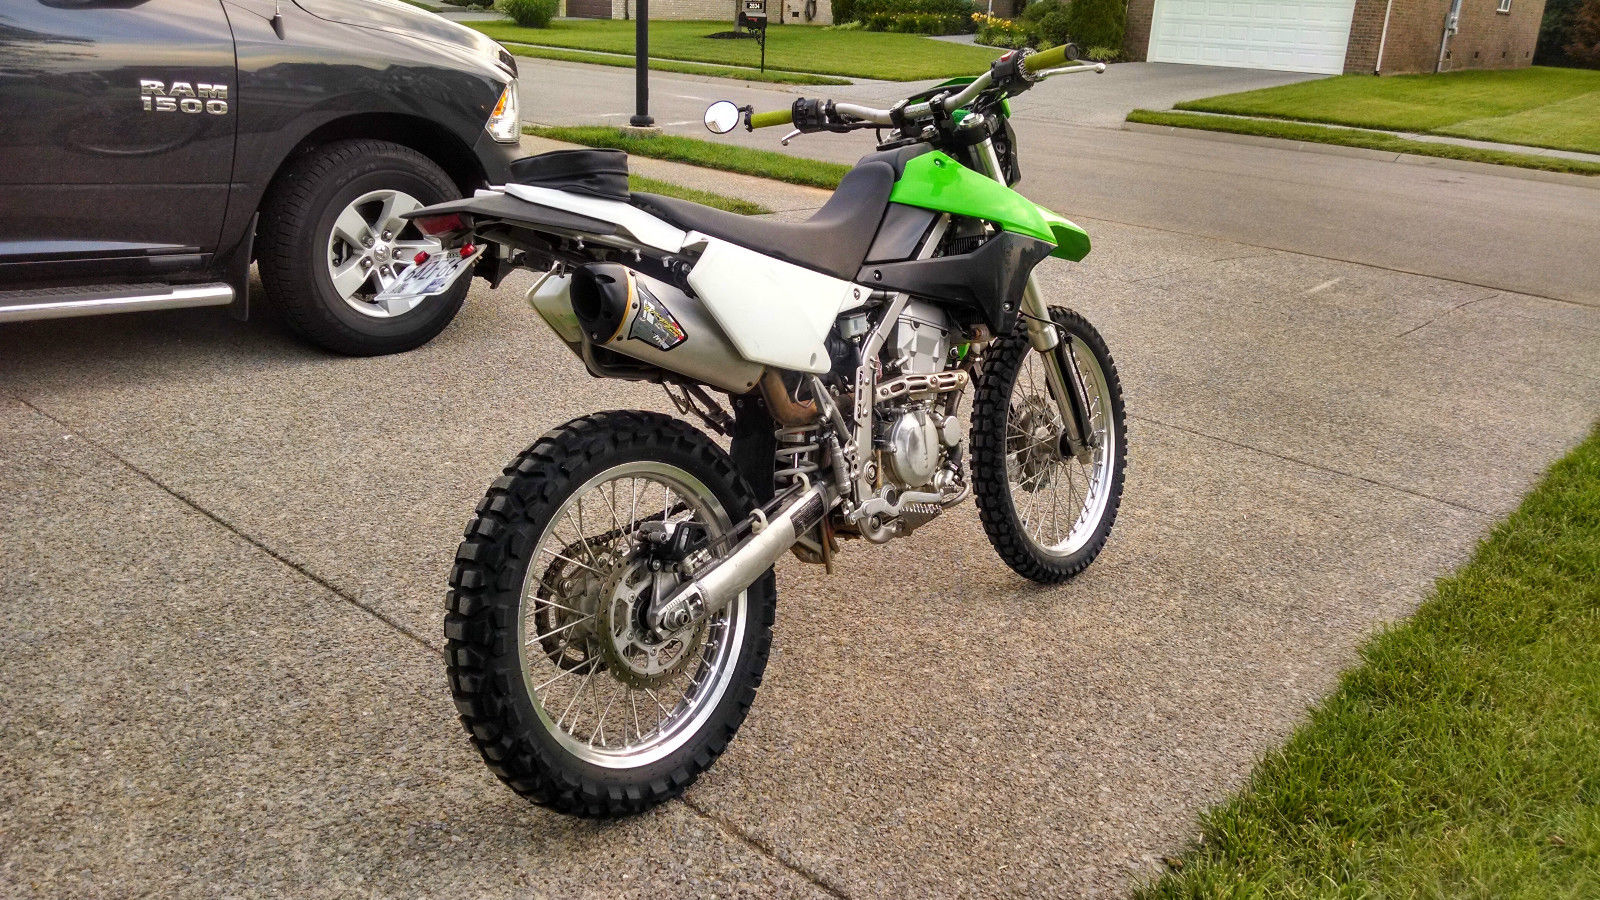 2013 kawasaki klx250s w bb 351cc kit two brothers exhaust bb carb more. Black Bedroom Furniture Sets. Home Design Ideas